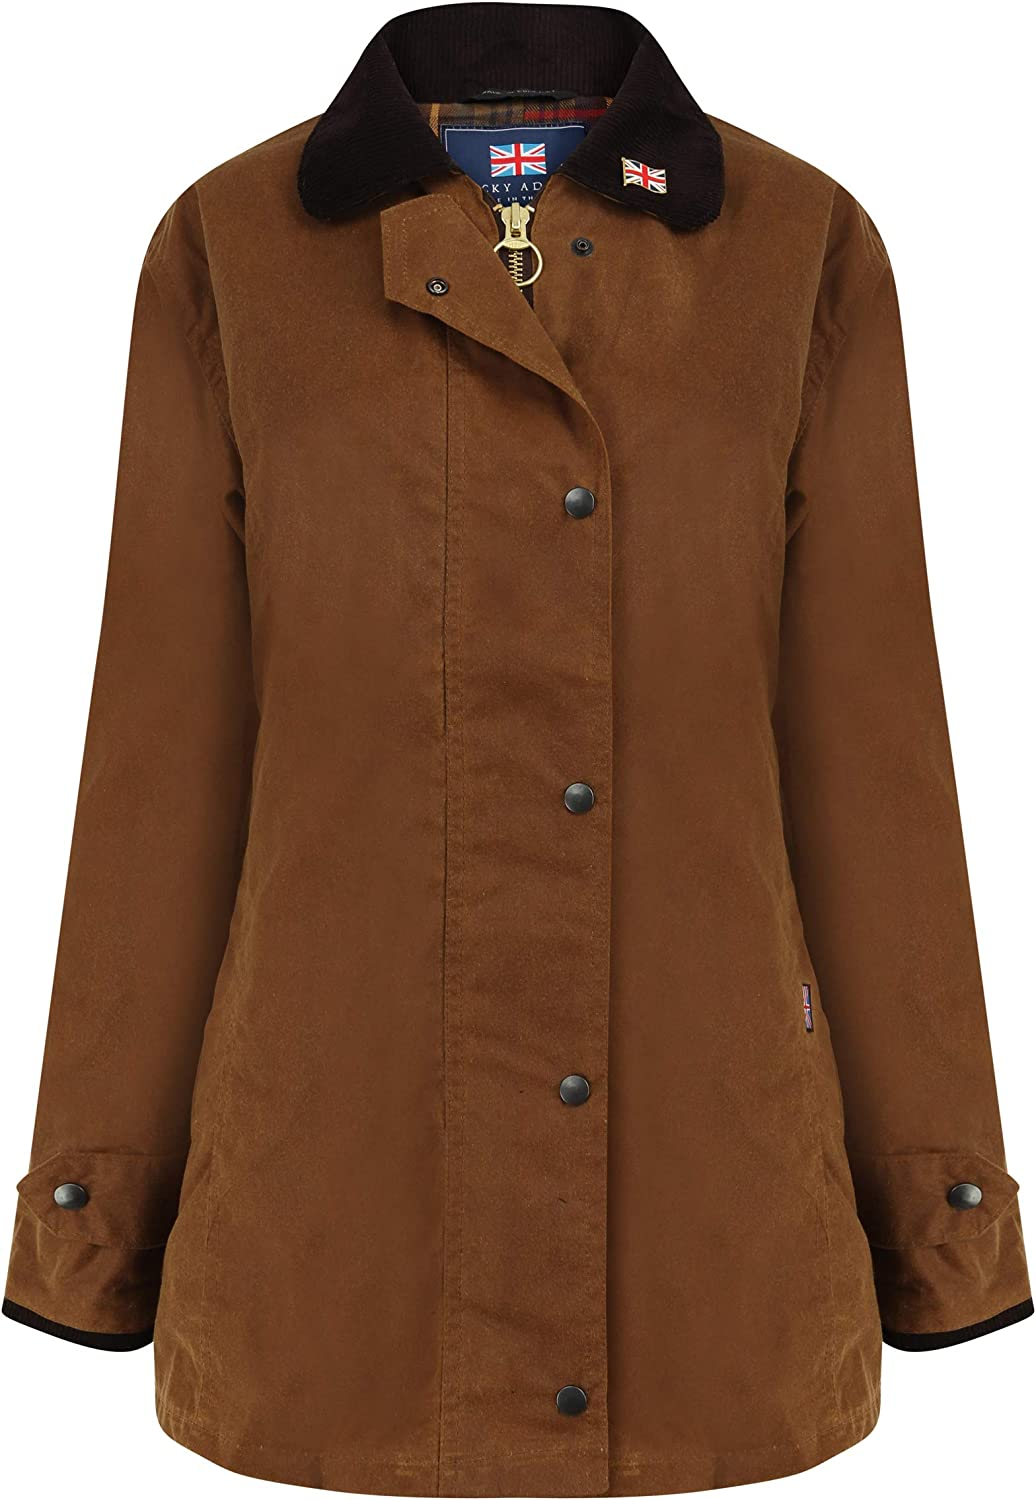 Nicky Adams Ladies Waterproof Waxed Cotton Equestrian Wax Jacket with Riding Vent